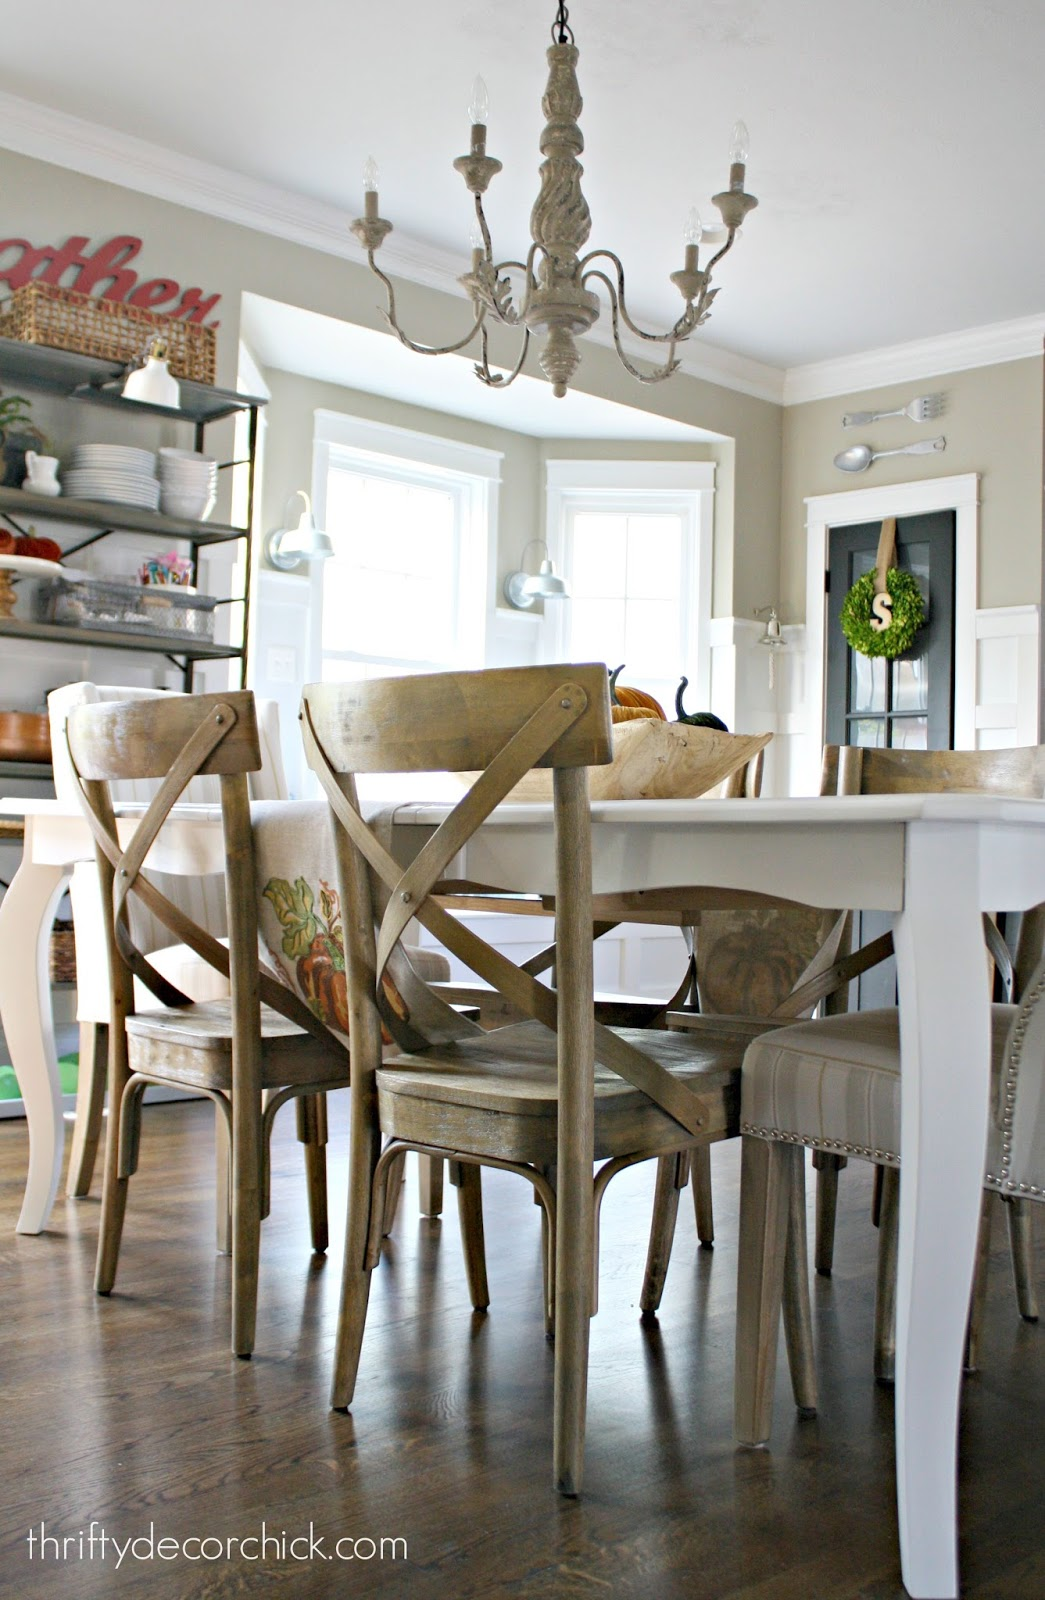 how to paint a kitchen table from thrifty decor chick. Black Bedroom Furniture Sets. Home Design Ideas